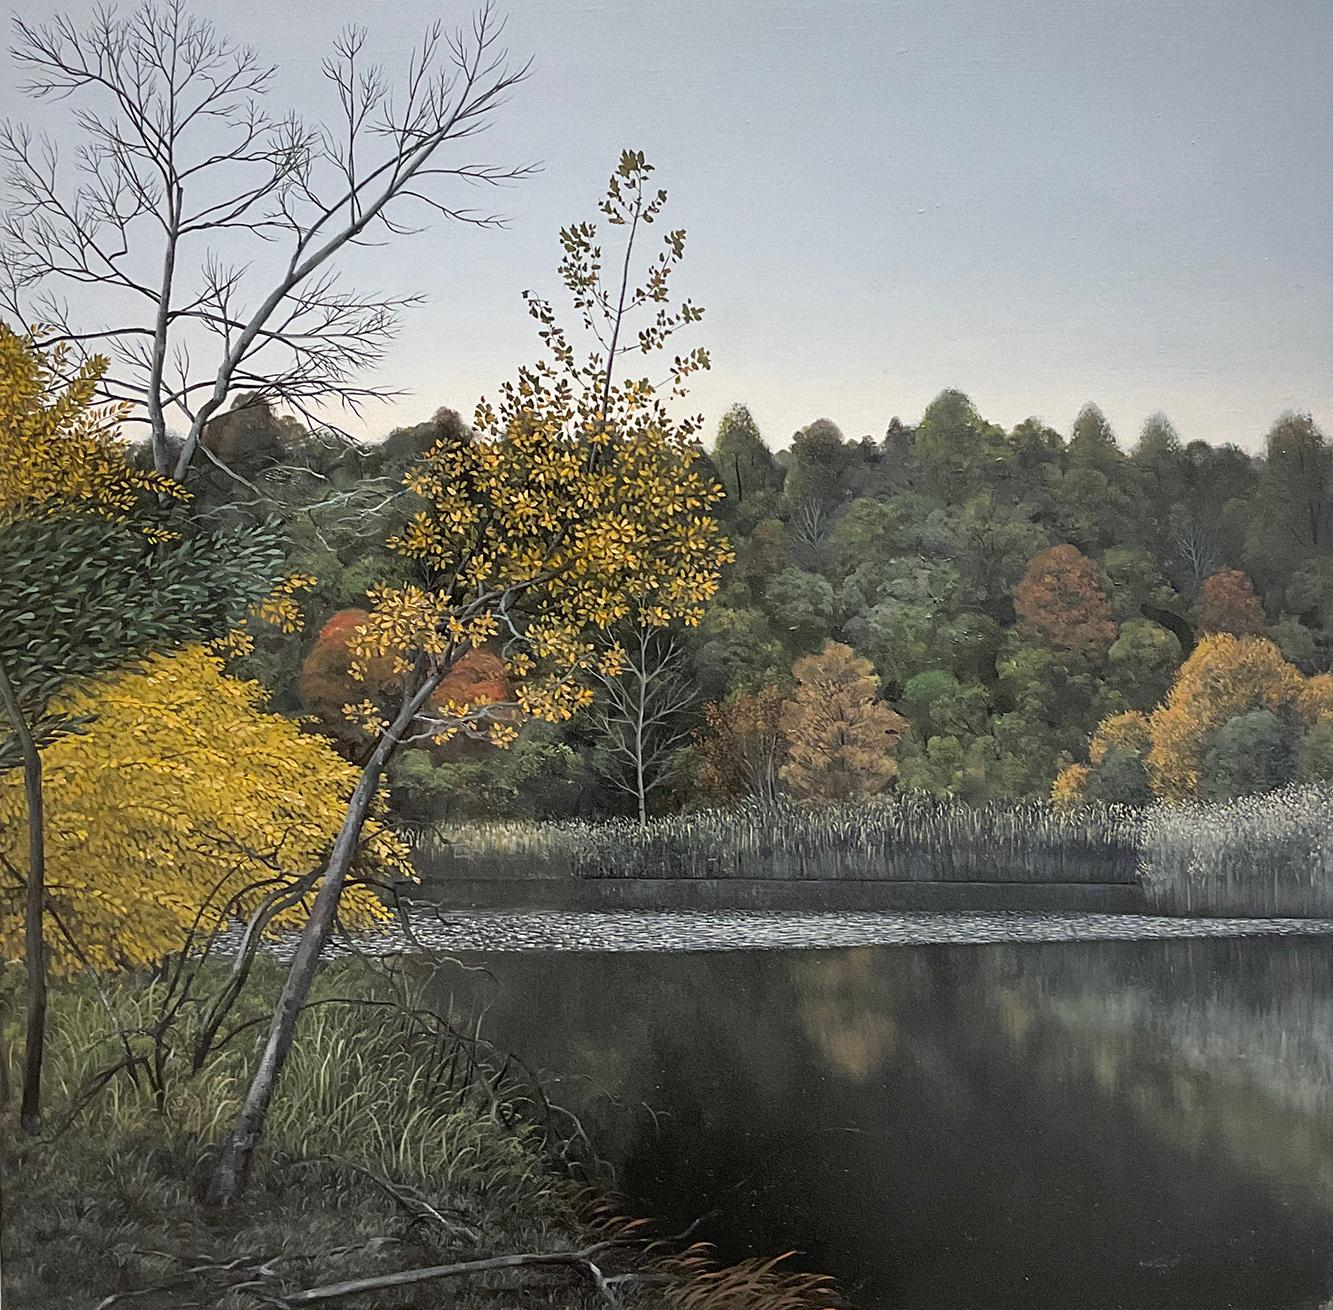 Indifferent Ponds (Photorealist Landscape Painting of the Hudson River Valley)